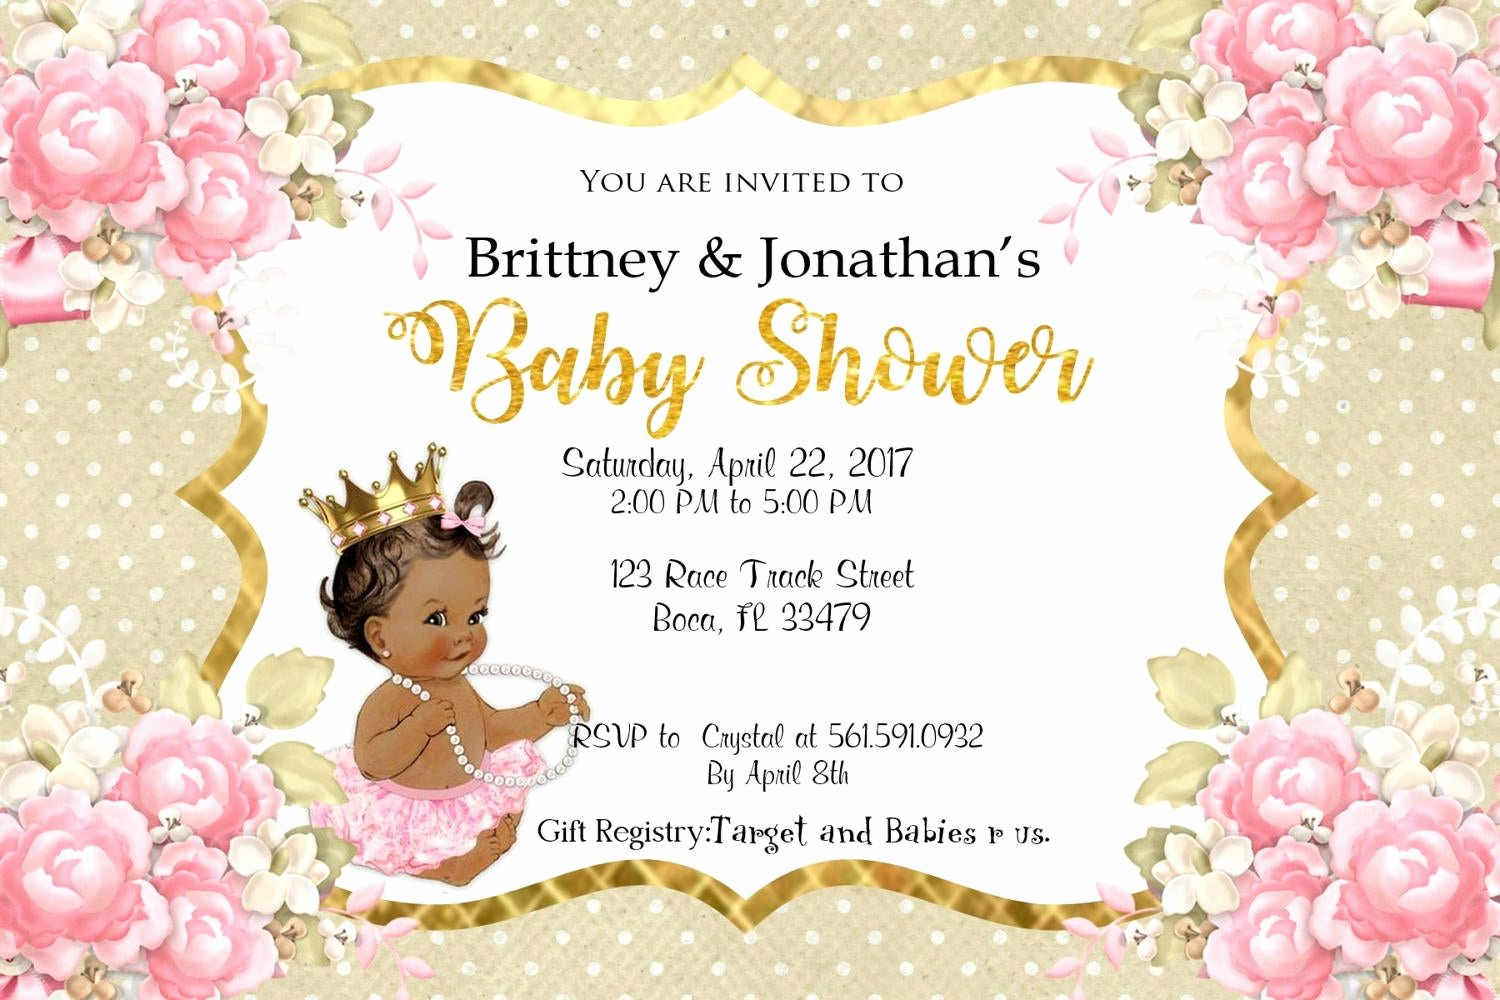 Princess Baby Shower Invitations Luxury Little Princess Baby Shower Invitation Princess Baby